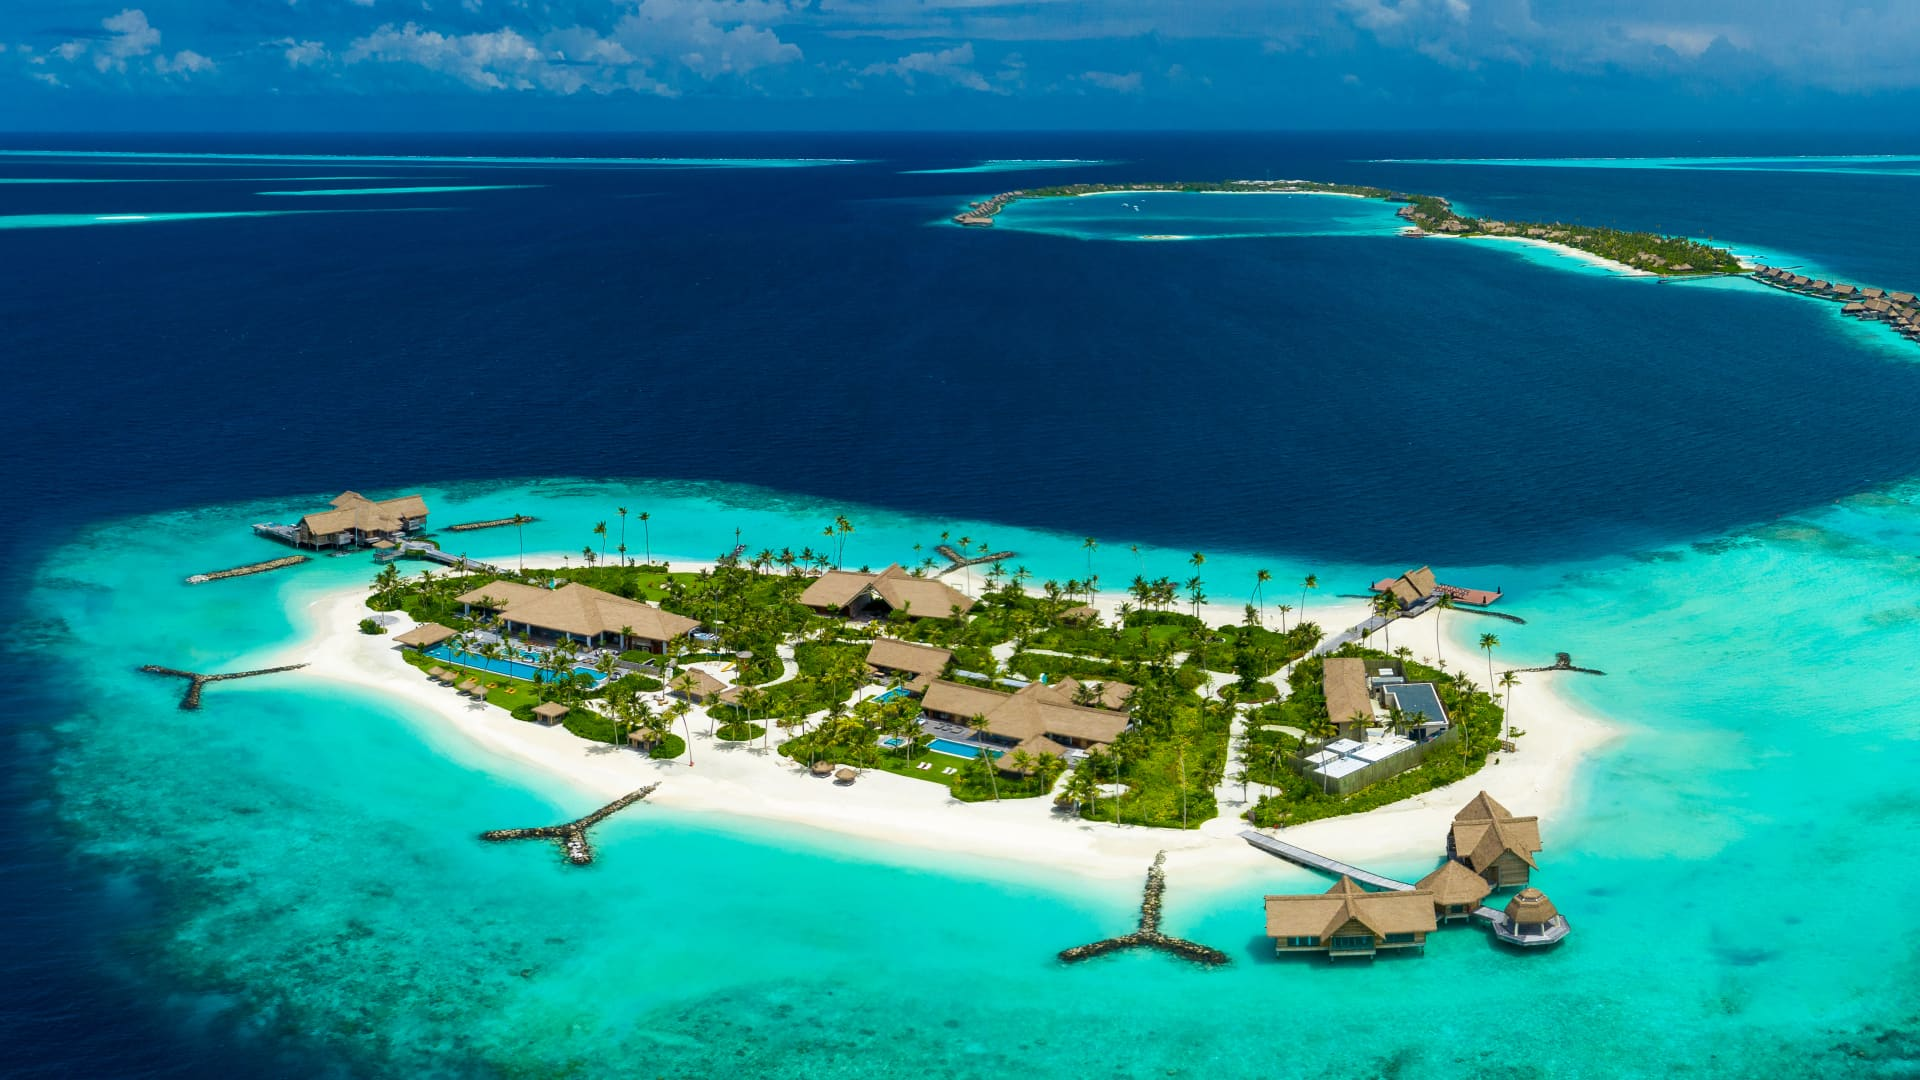 Travelers can book an entire island at Waldorf Astoria Maldives Ithaafushi.